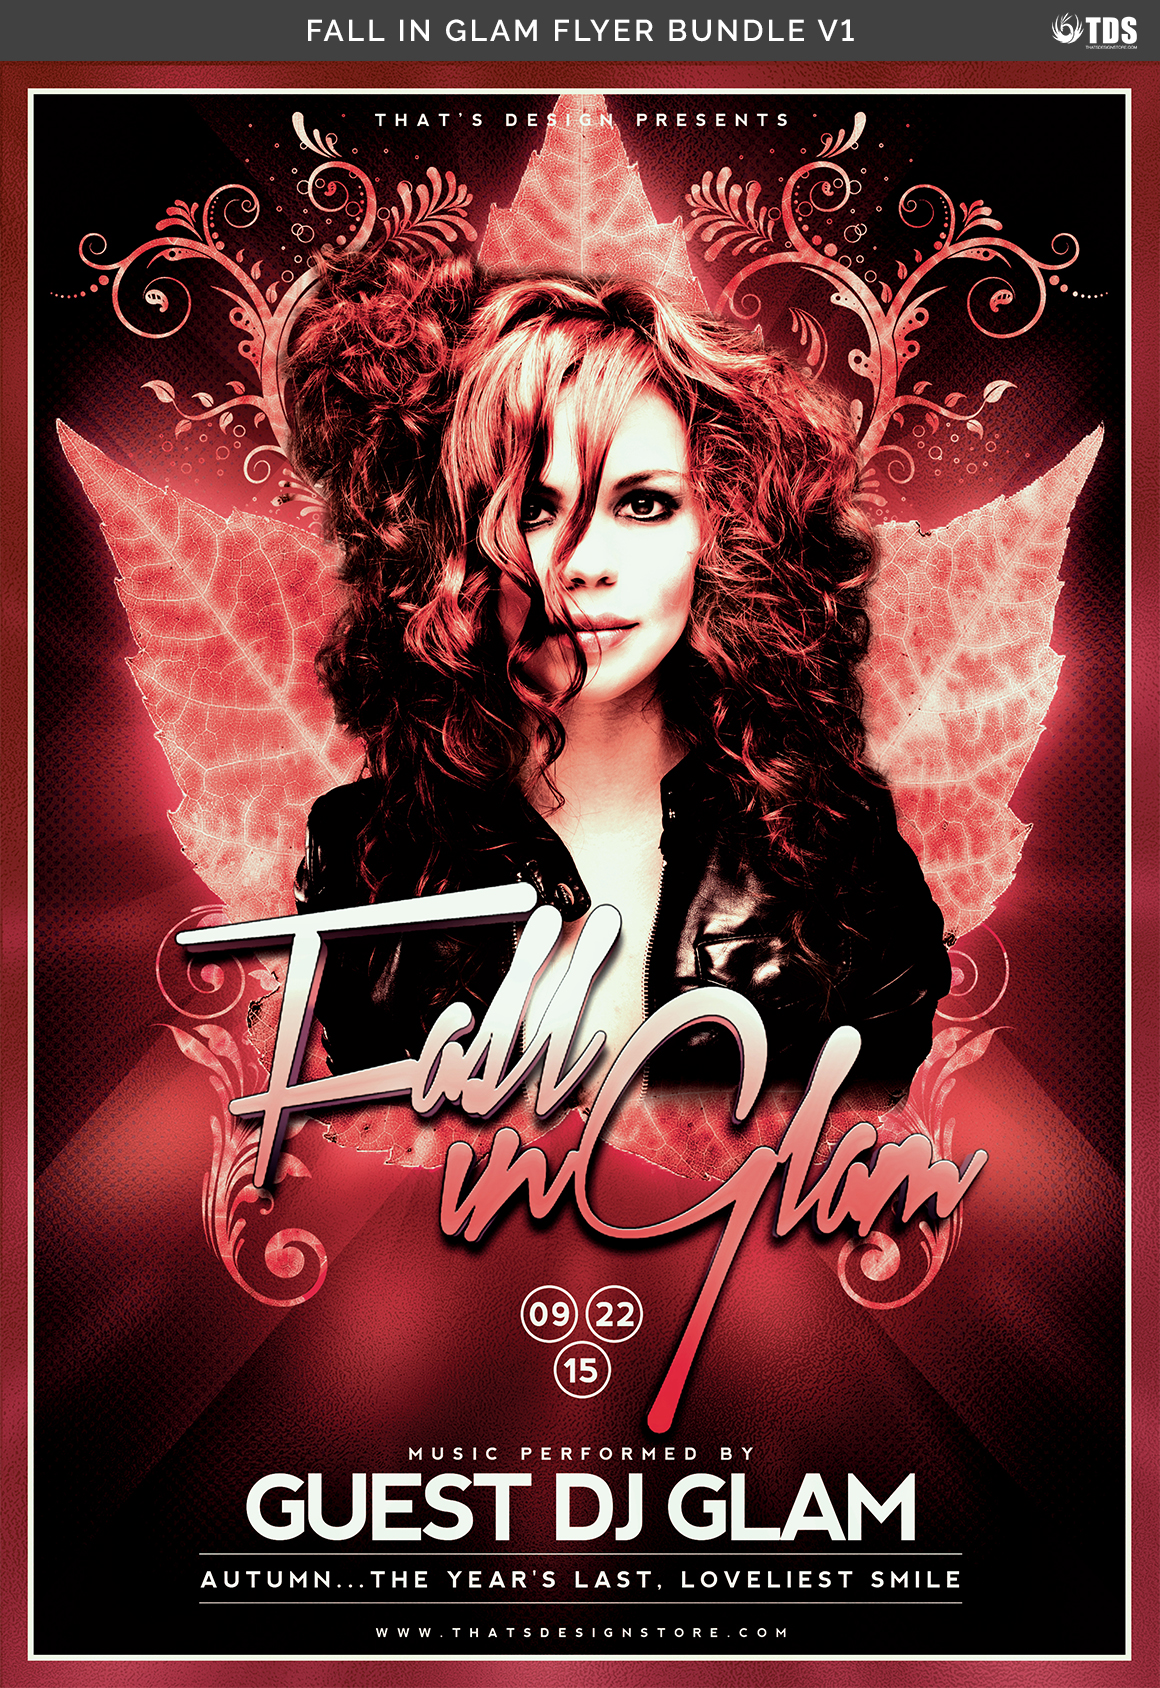 Fall in Glam Flyer Bundle V1 example image 11